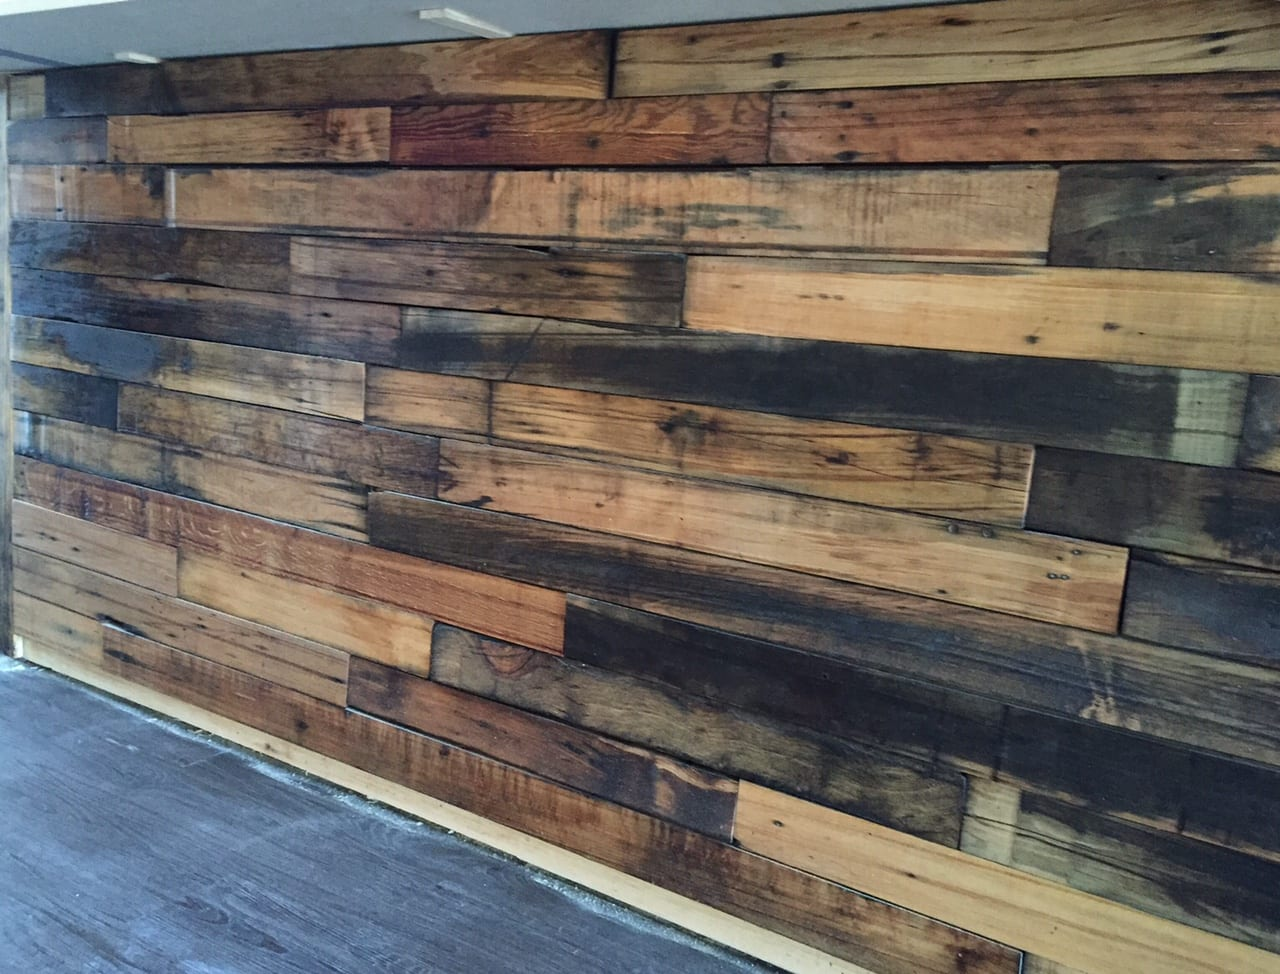 The bar at Park & Oak is made of 150-year-old oak. Photo credit: Ronni Newton